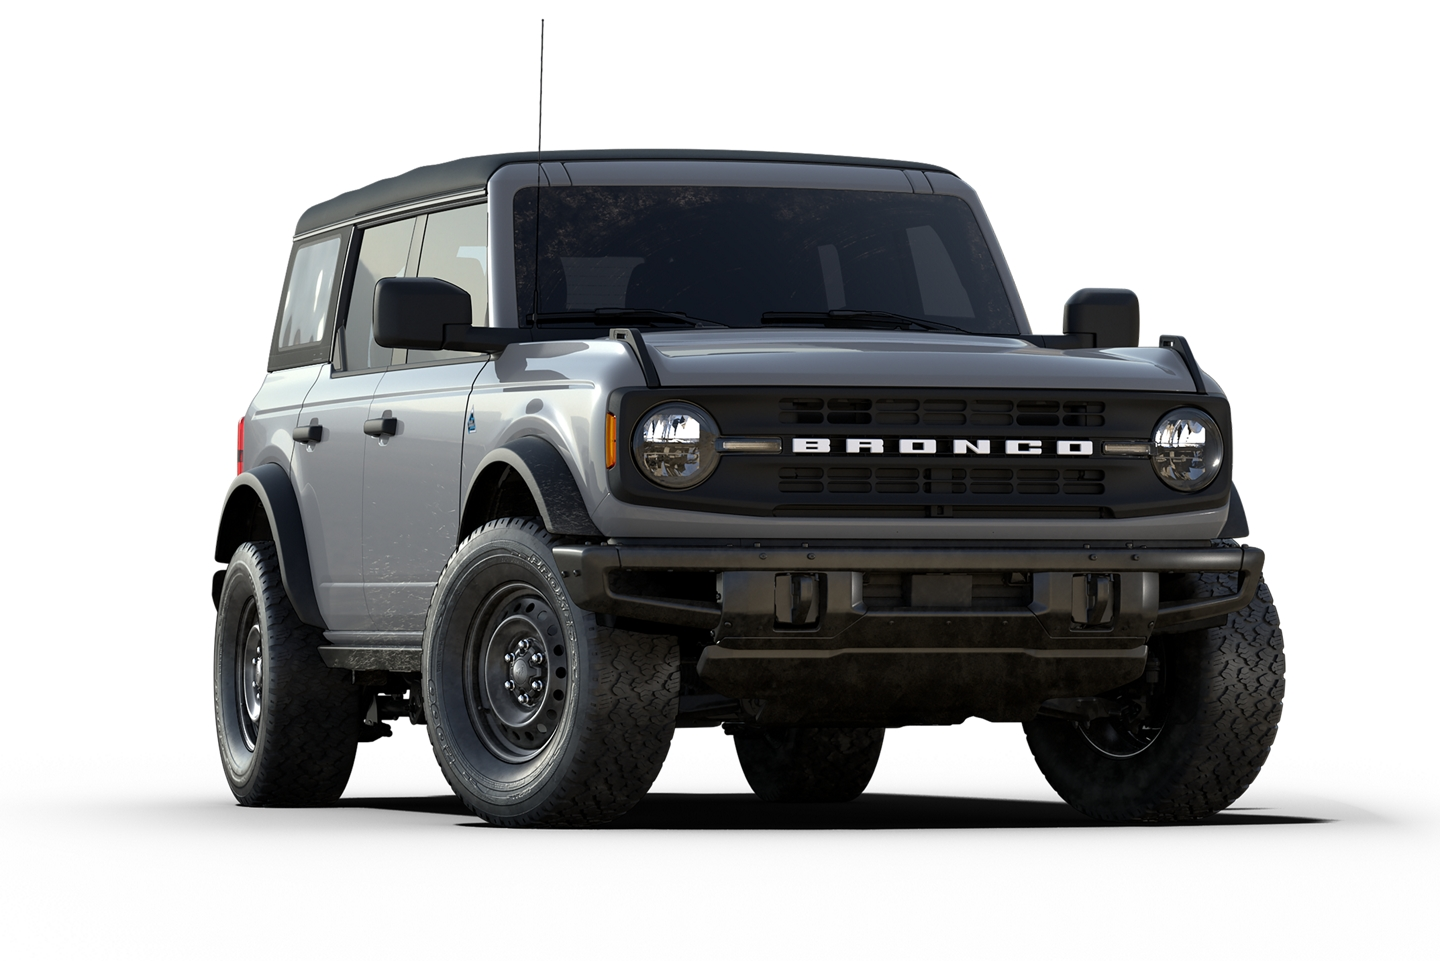 2021 Ford Bronco Black Diamond model